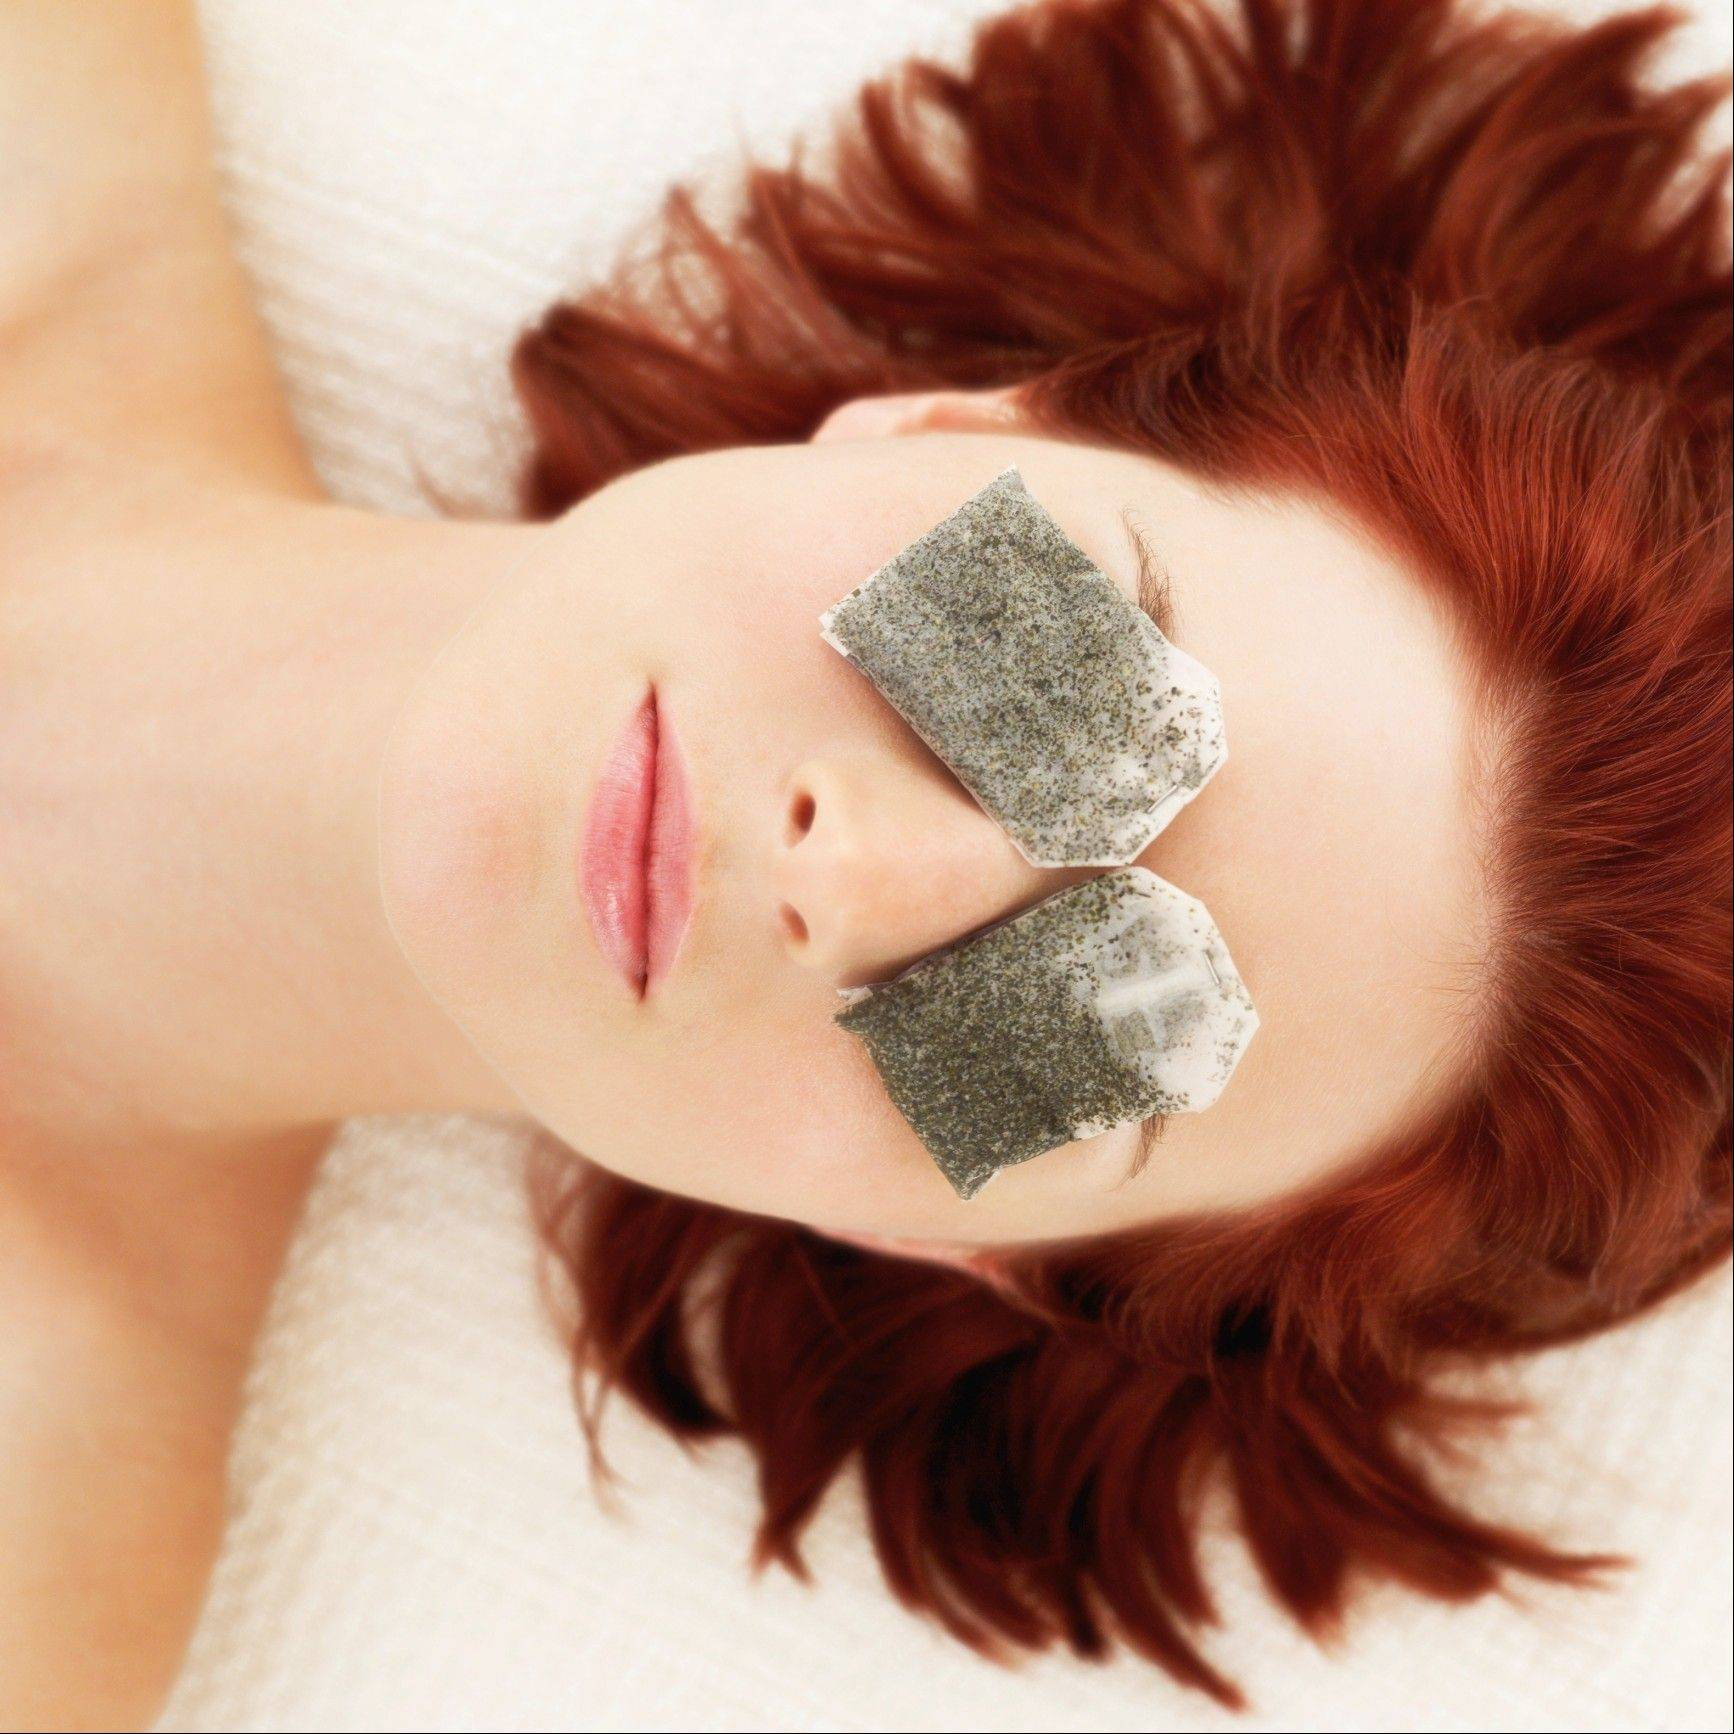 Natural beauty remedies do work. Try cool steeped green tea bags on your eyes to reduce puffiness.